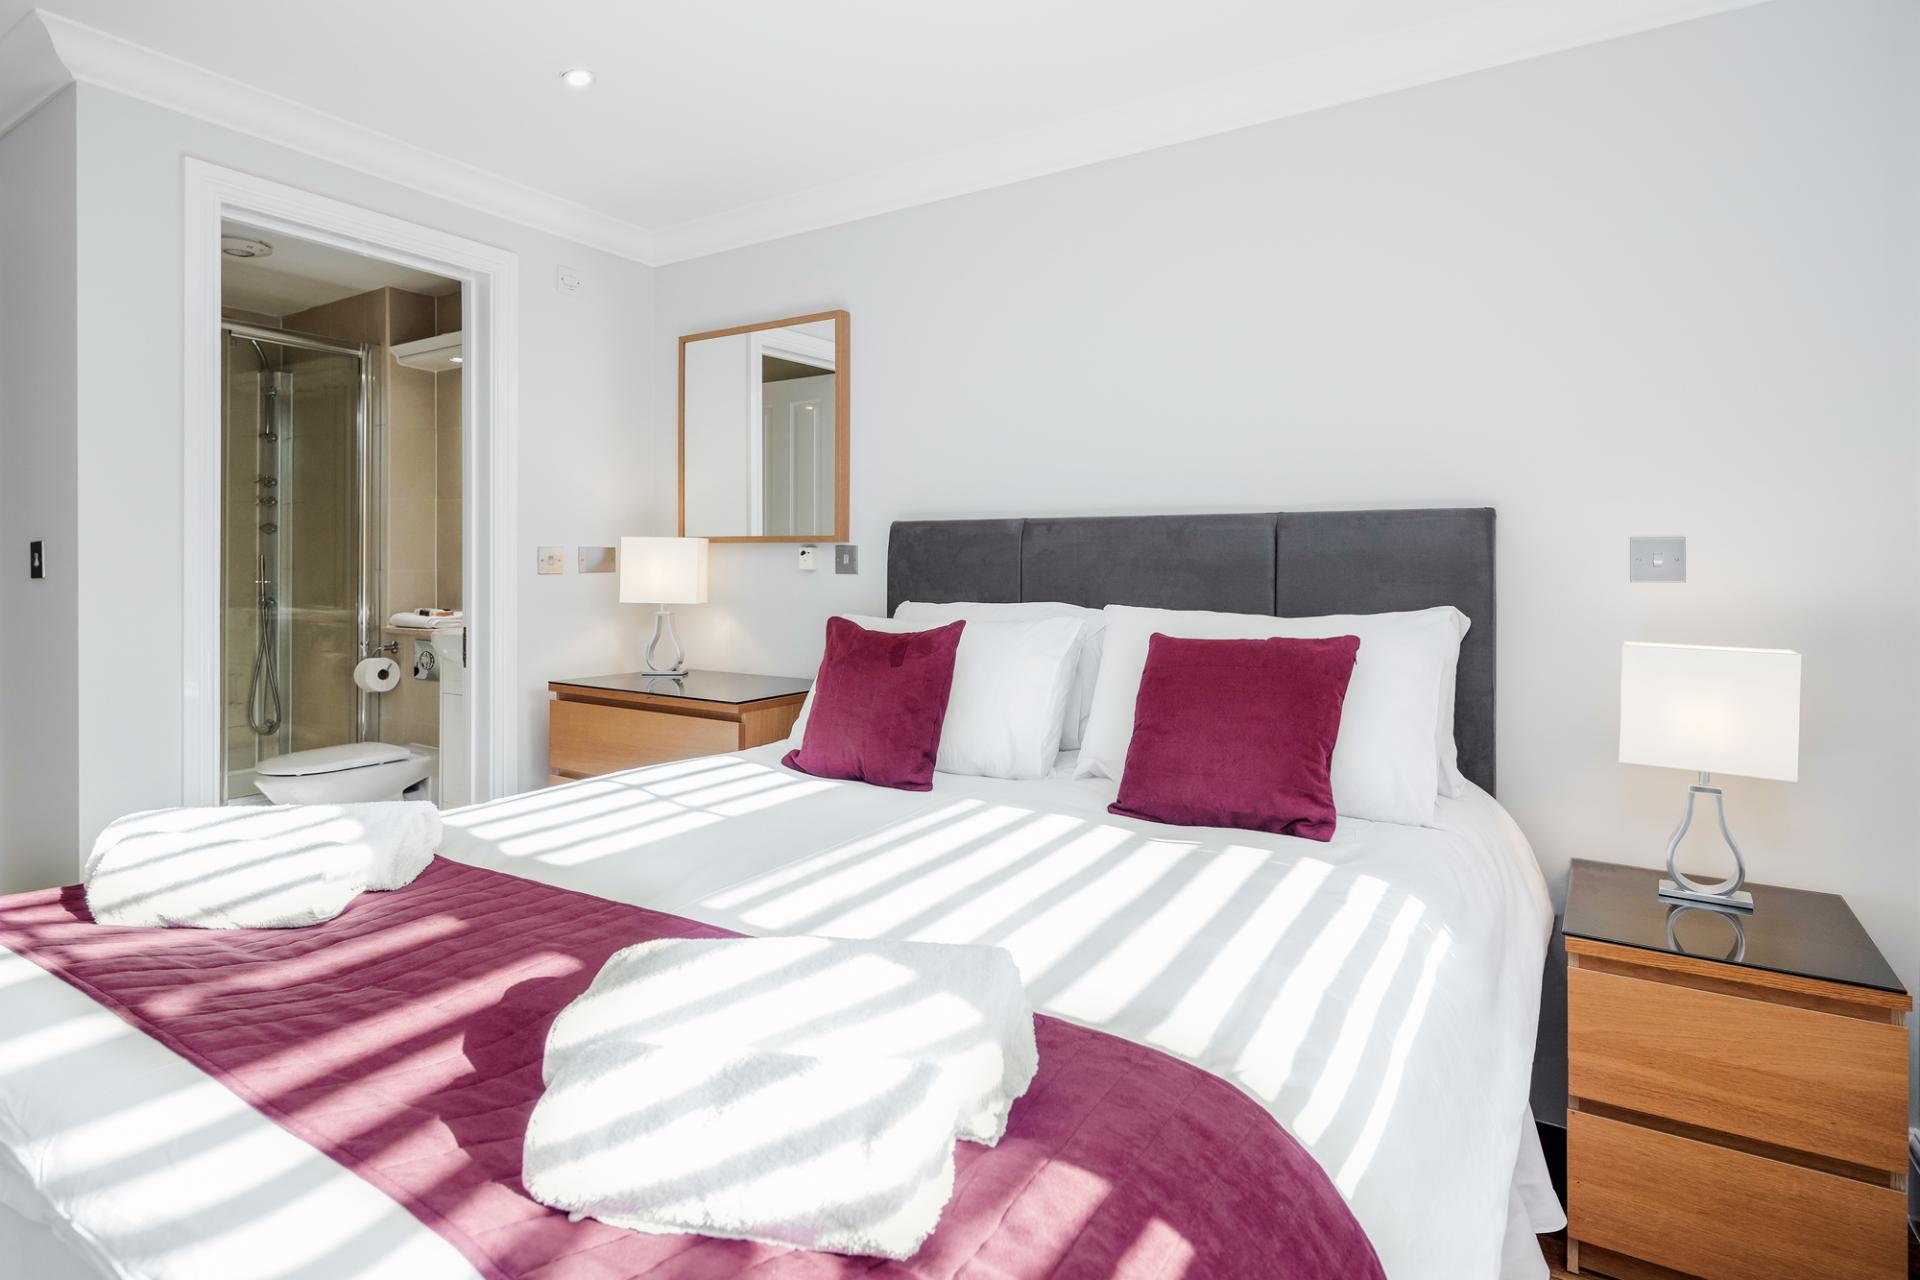 Bedroom at Little Orchard Place Apartments, Centre, Esher - Citybase Apartments